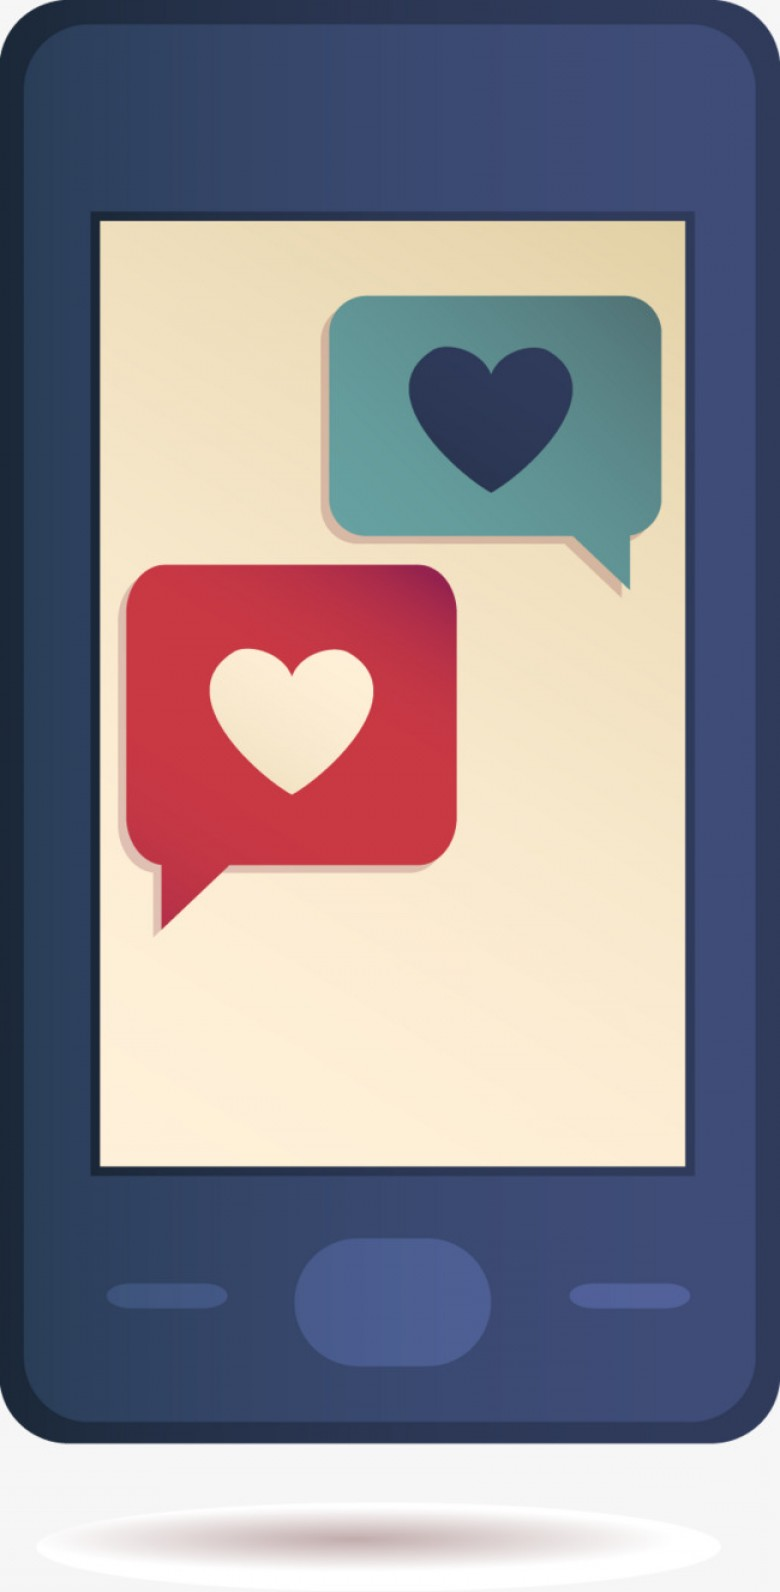 Vectores Para Descargar Gratis: Free Phone Vector Love To Pull Material Free Download